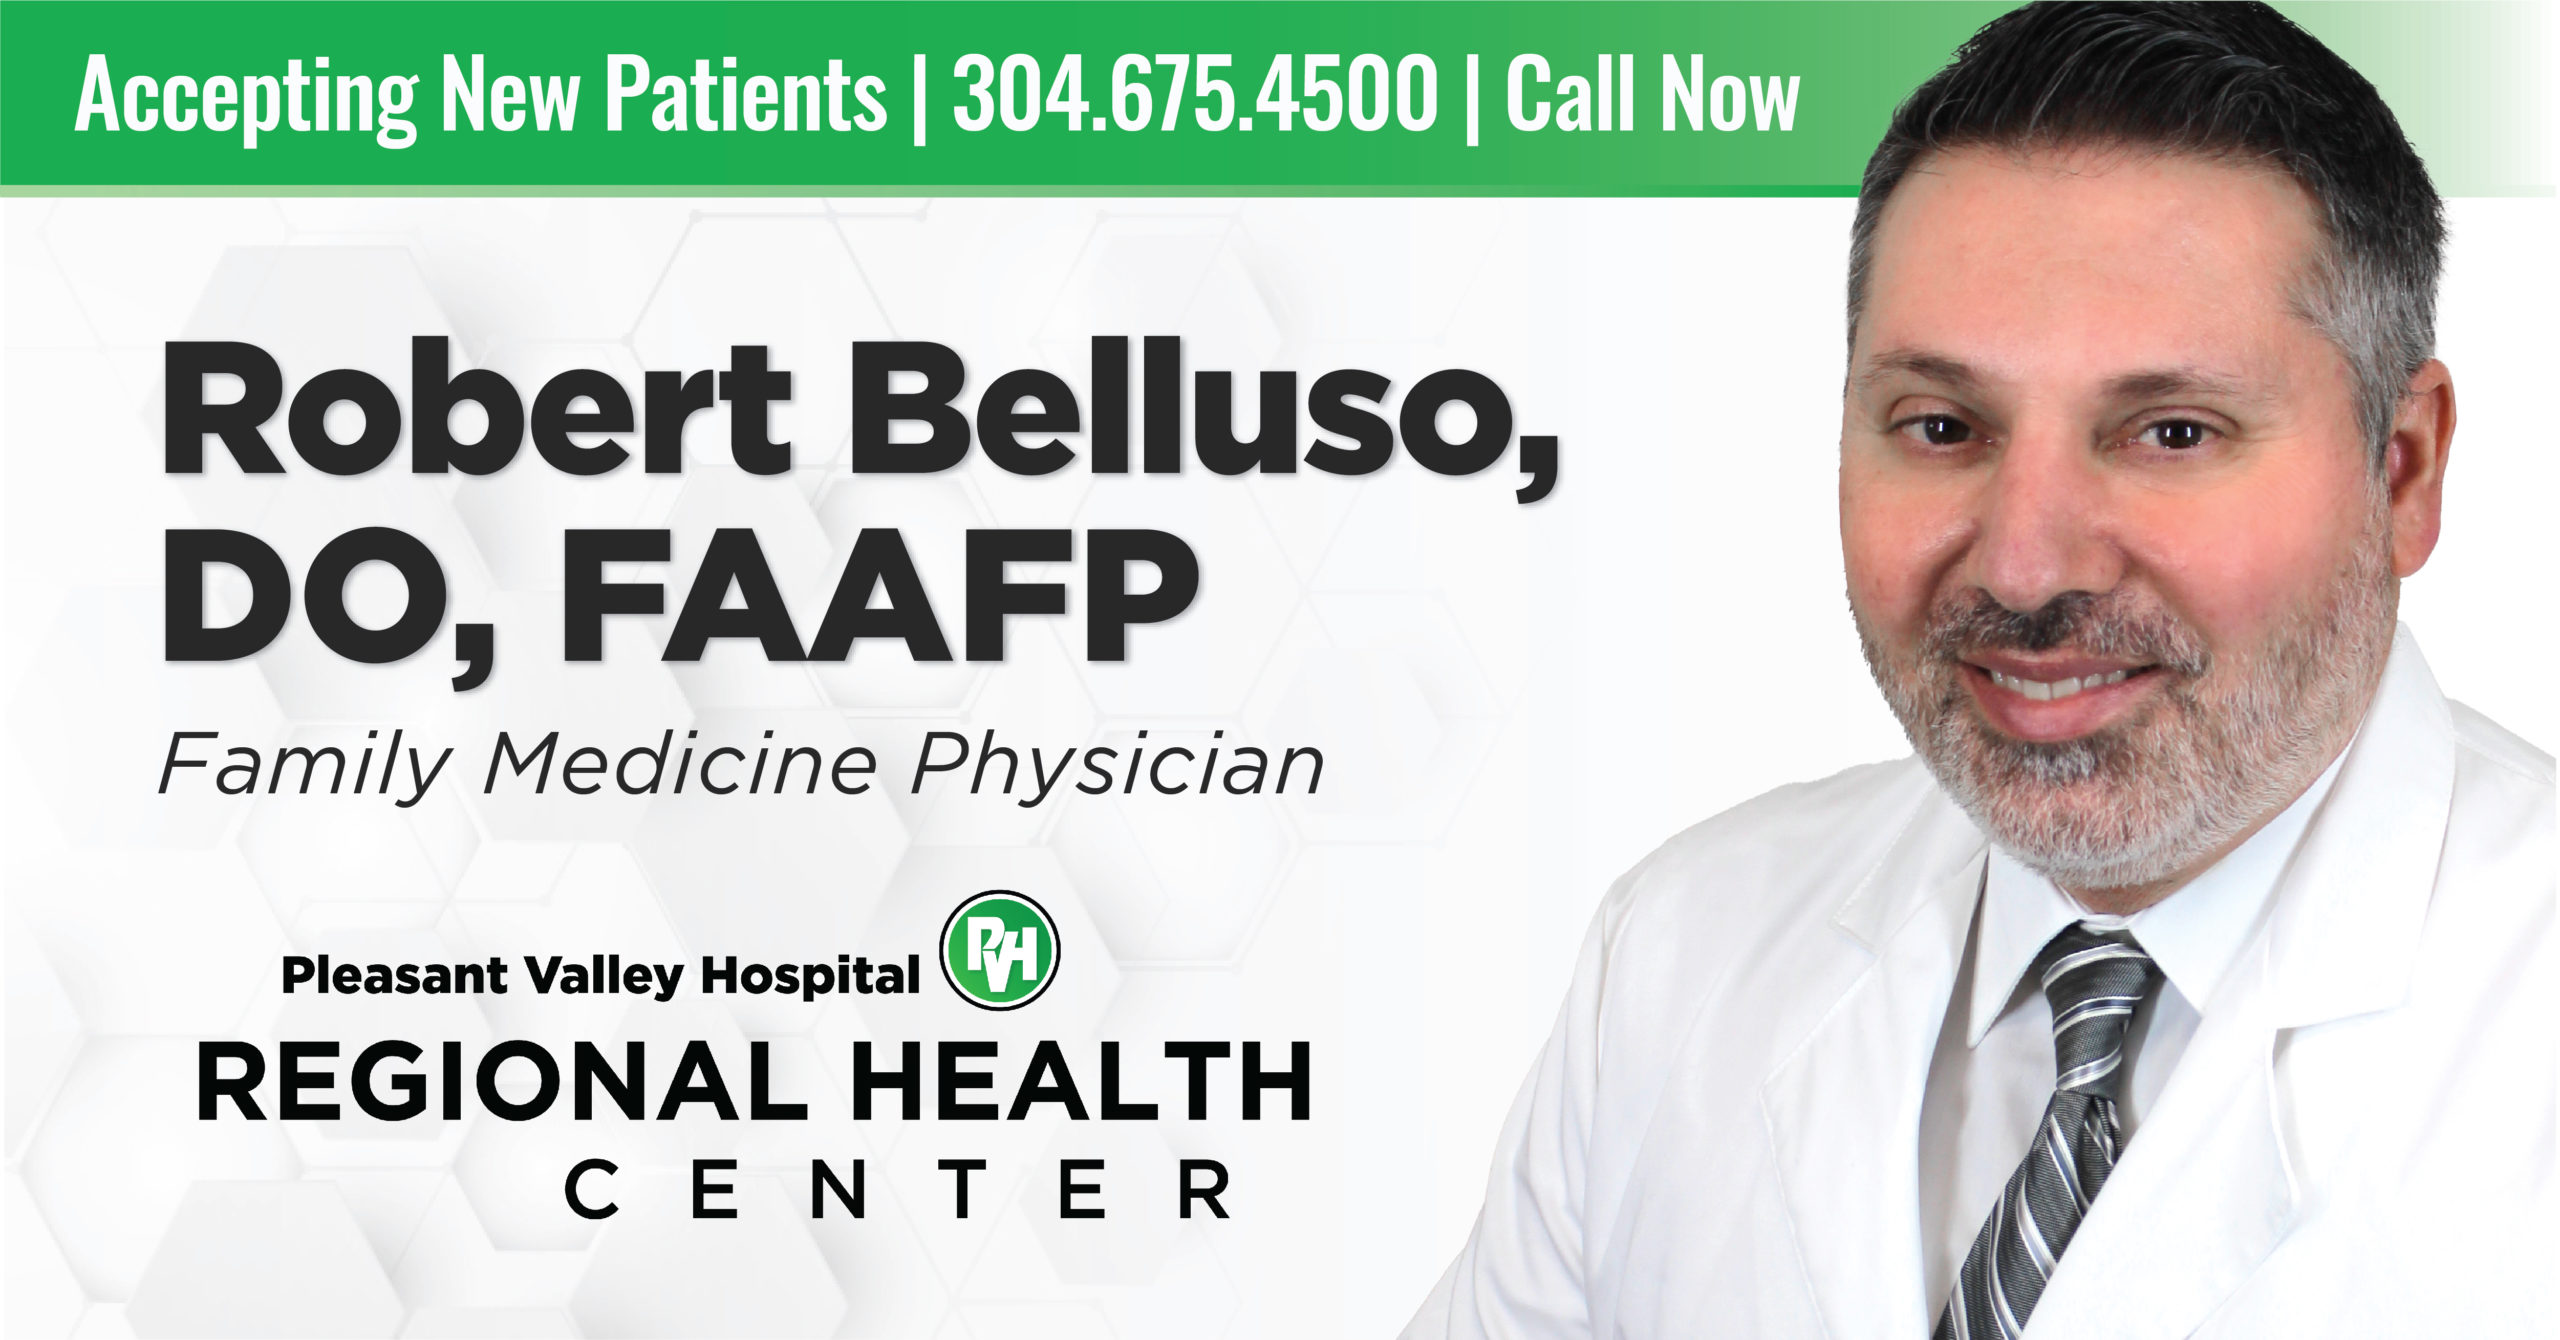 Accepting New Patients | 304.675.4500 | Call Now | Robert Belluso, DO, FAAFP, Family Medicine Physician | Pleasant Valley Hospital Regional Health Center